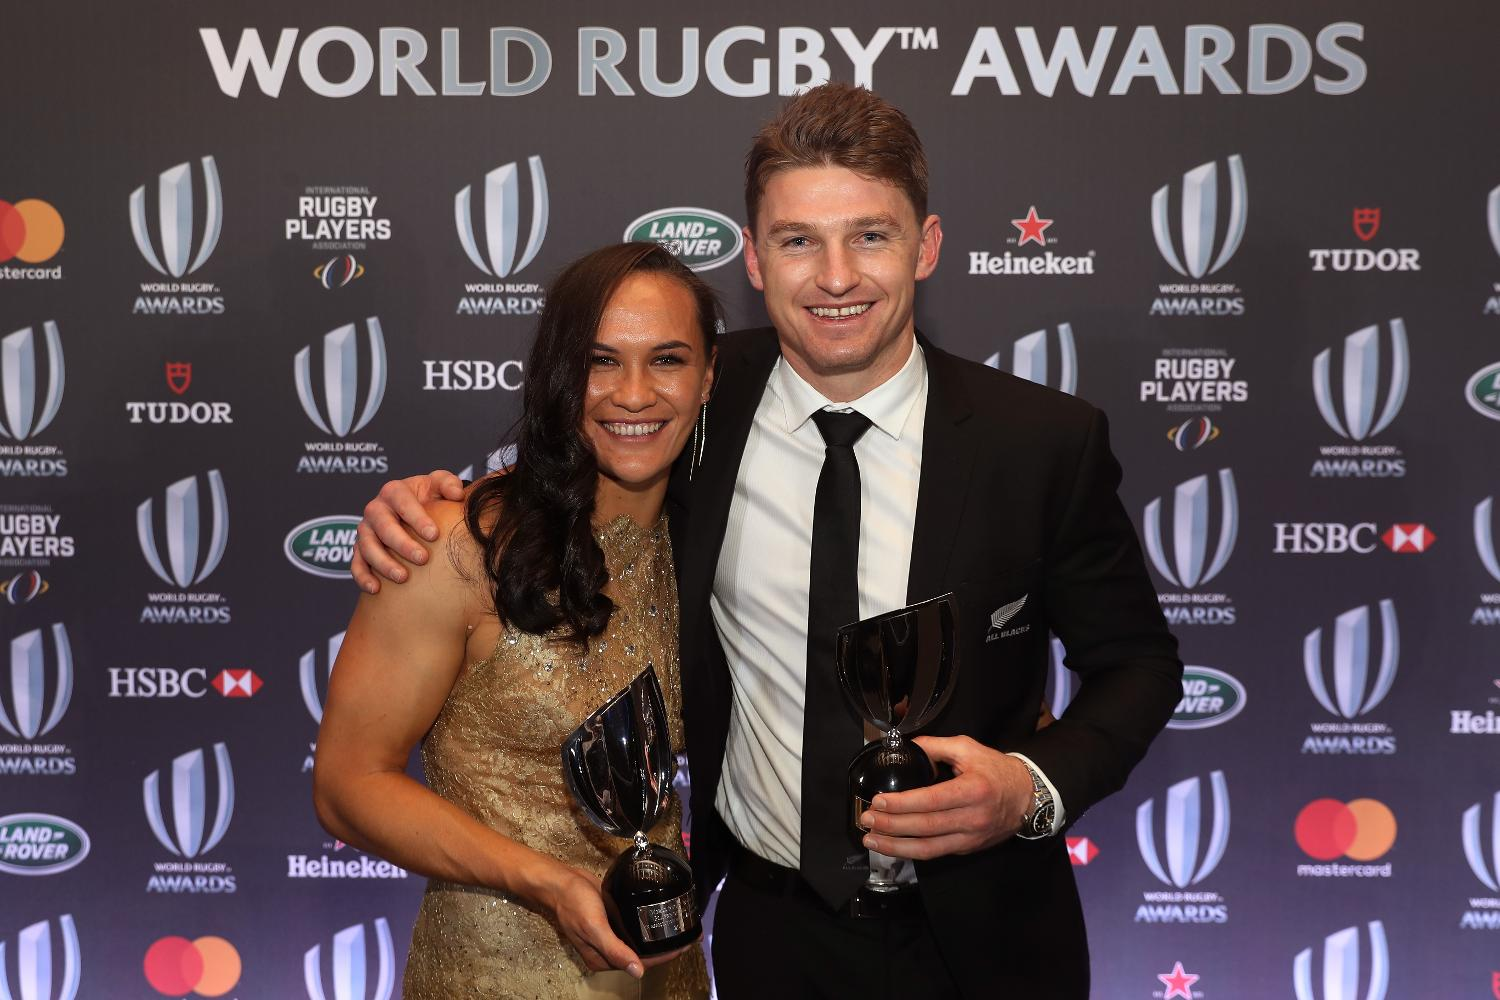 World Rugby Players of the Year Award in association with Mastercard:  Portia Woodman and Beauden Barrett, New Zealand